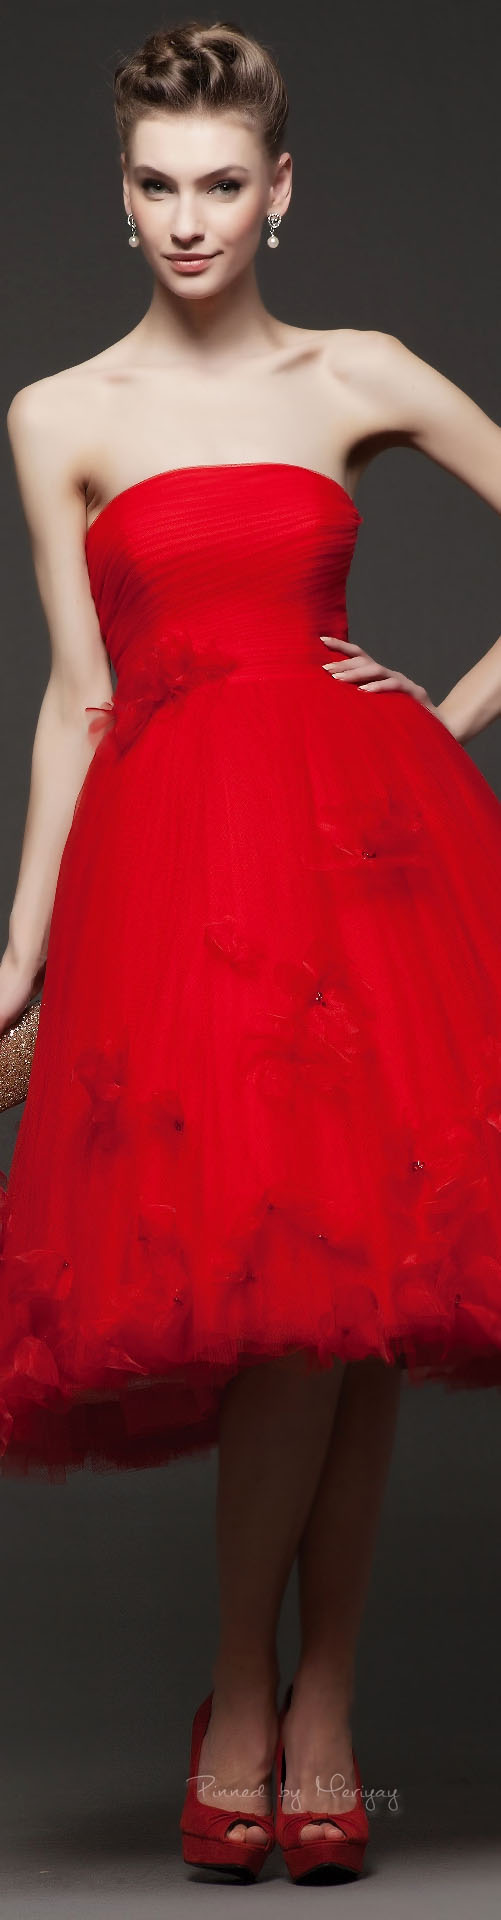 Rosa clará red pinterest rosa clara red fashion and cherry red